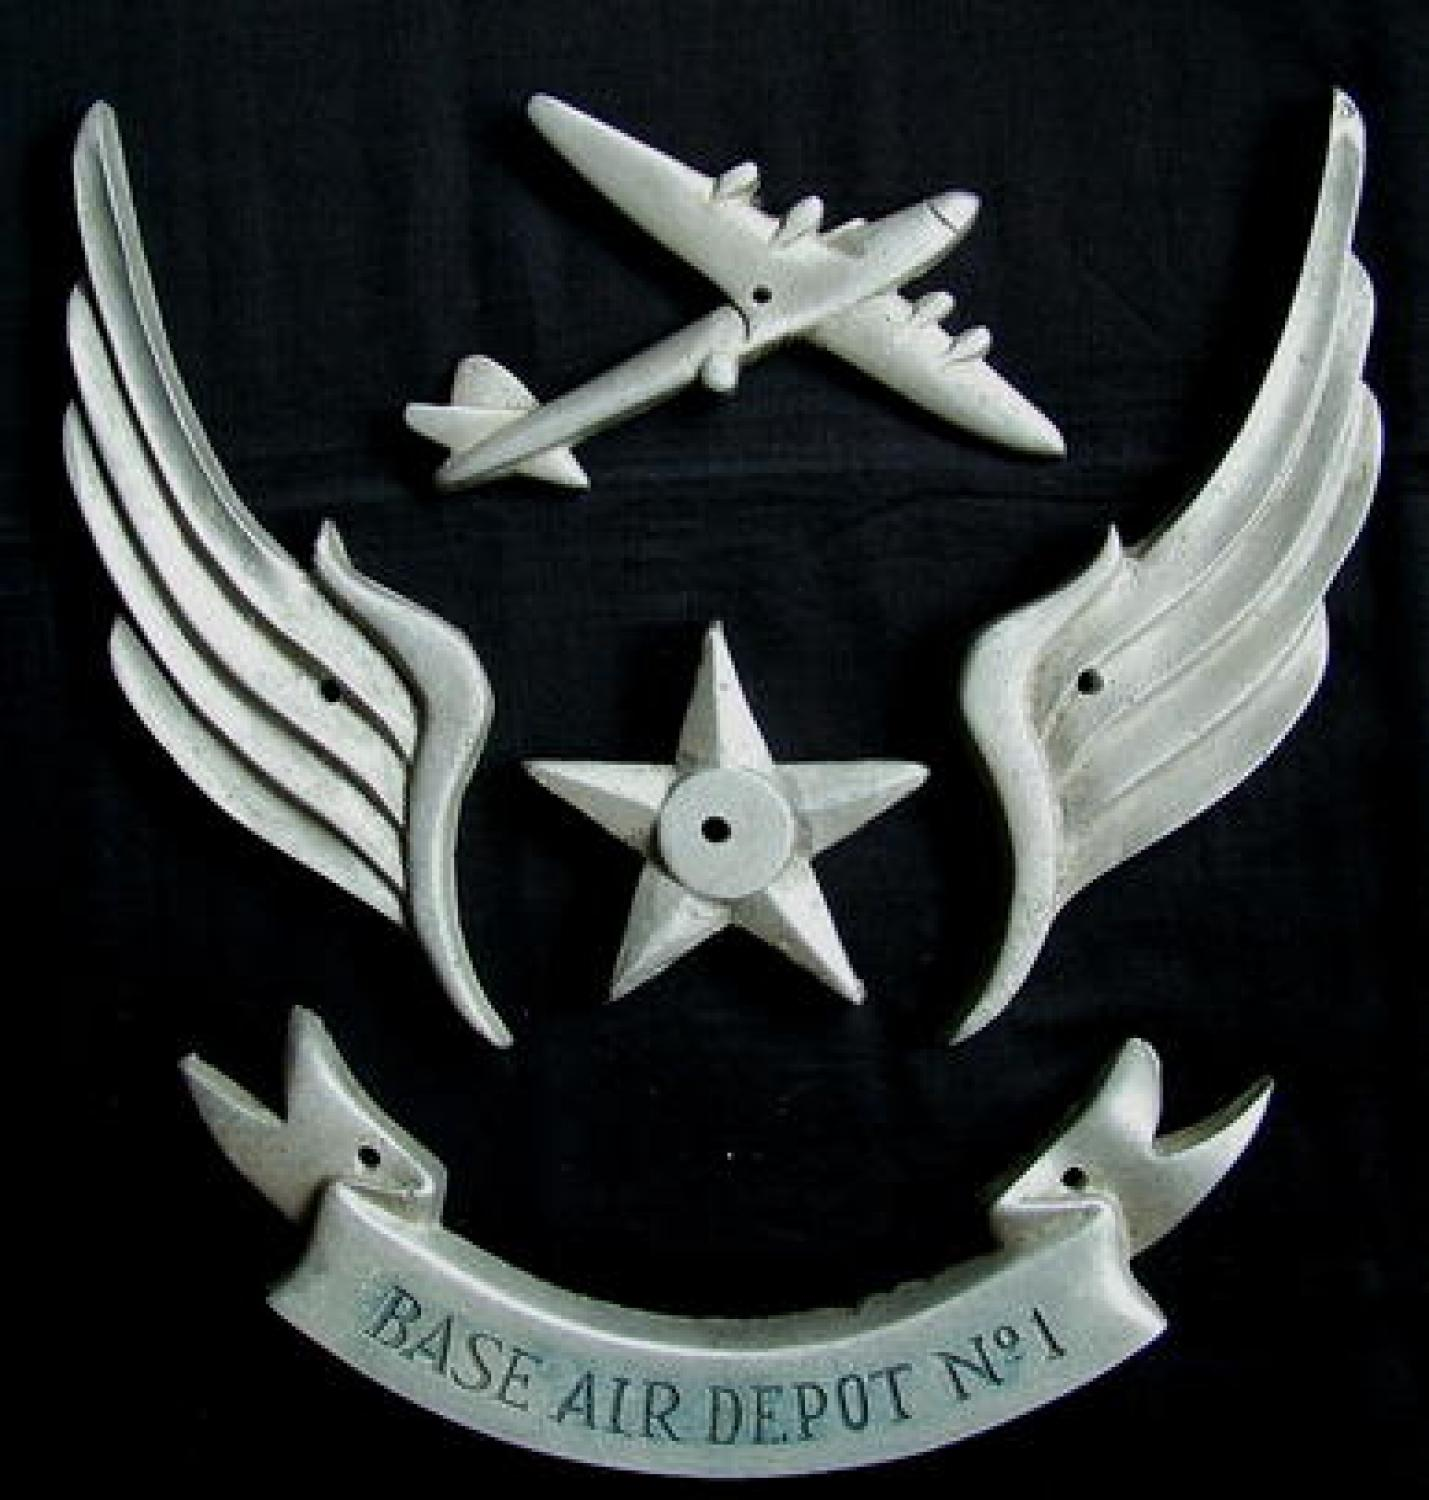 U.S.A.A.F. 8th AAF Base Depot Sign